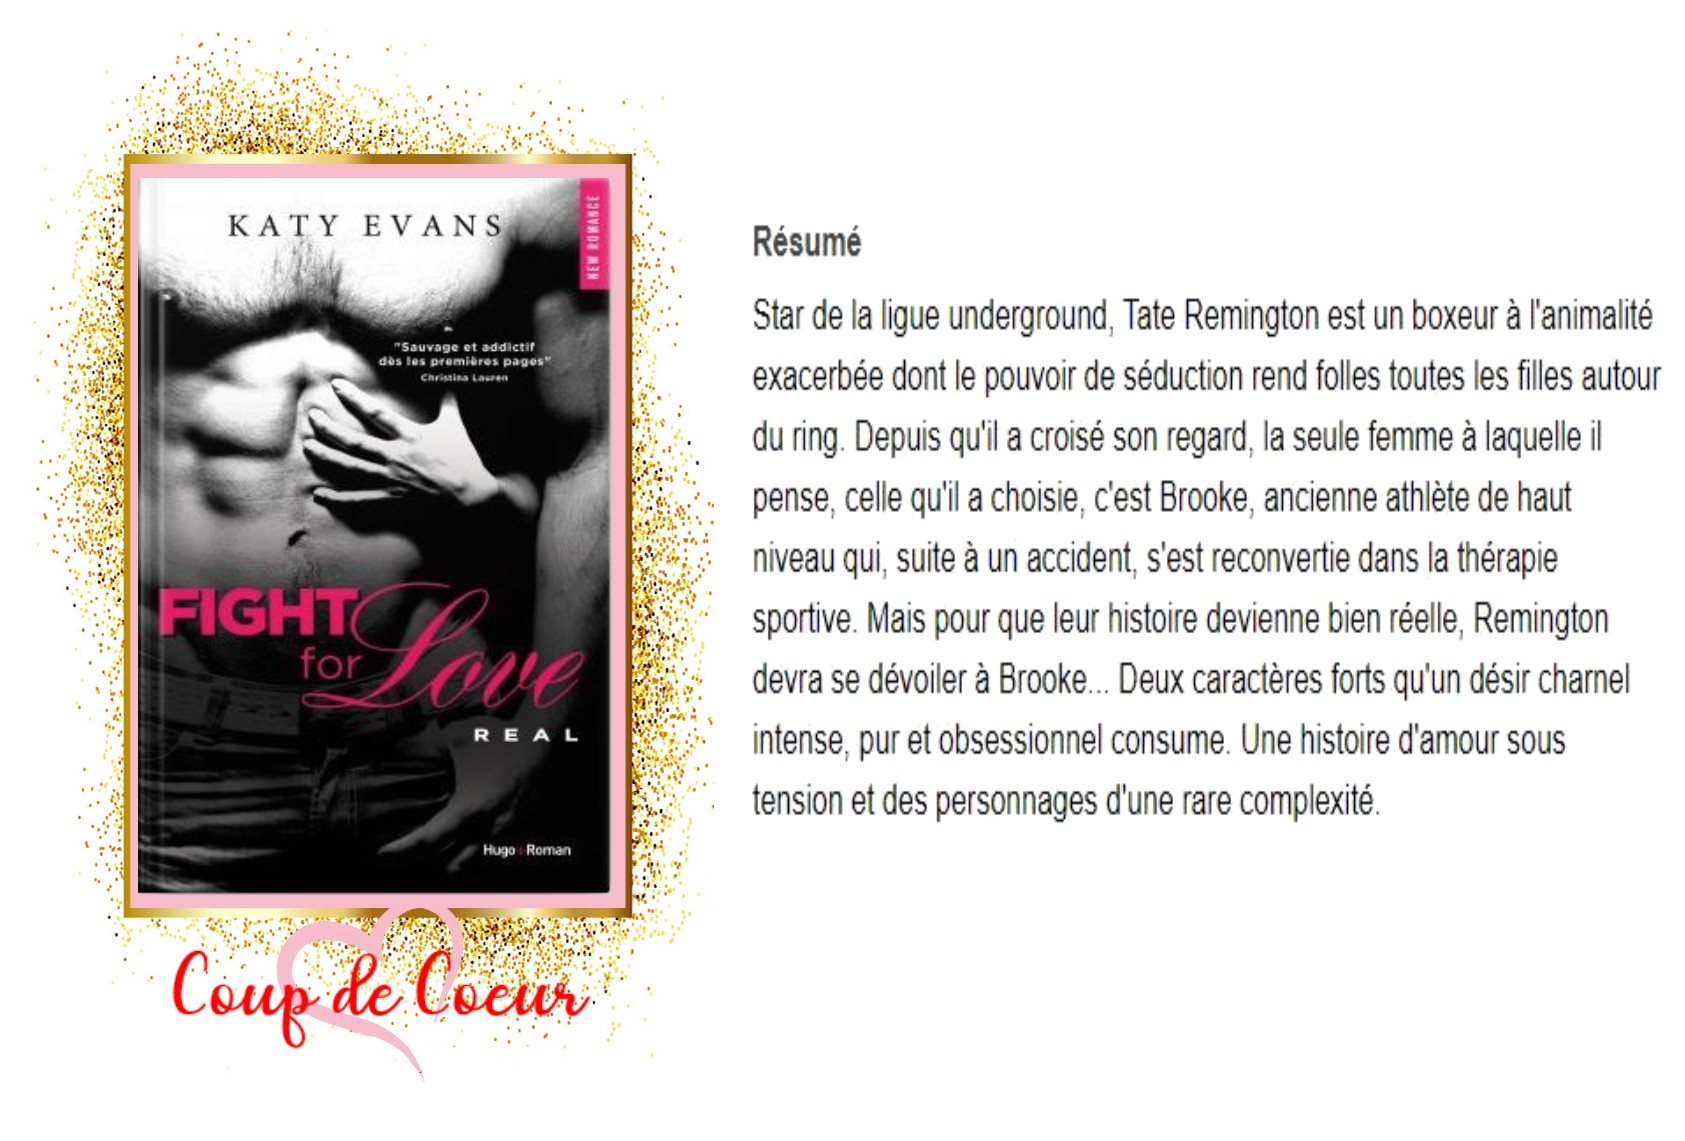 Fight for love , tome 1 real Avis